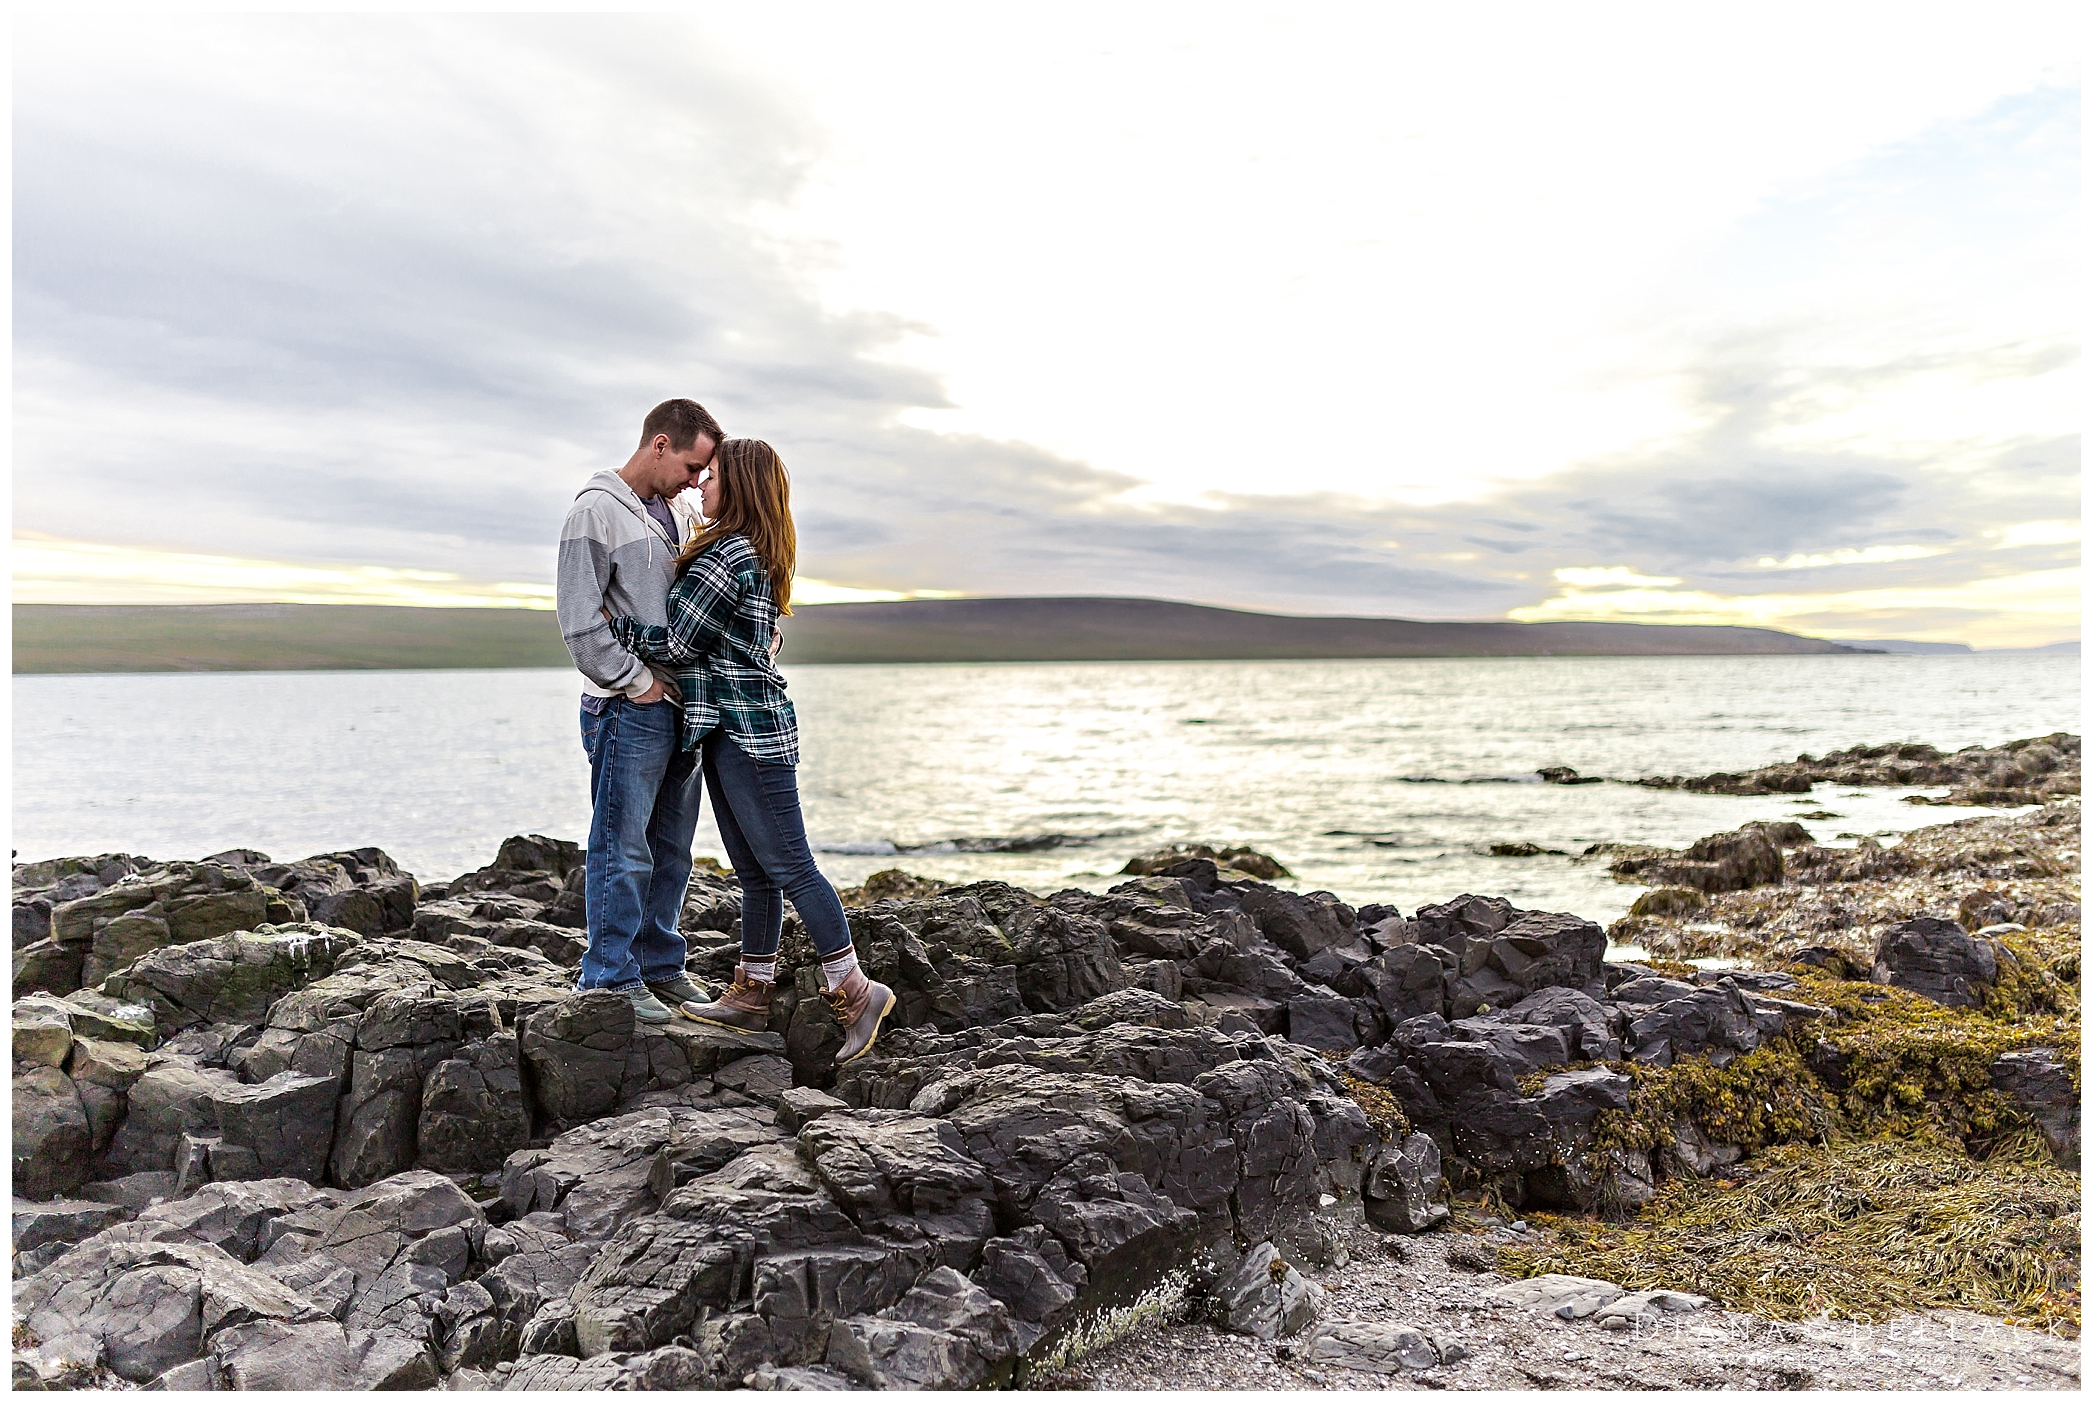 Diana Bellack Photography, Iceland, Iceland Photographer, Iceland Portrait Photographer, Travel, Anniversary, 5th Year Anniversary Trip, Iceland in 10 Days, Couples Session, Anniversary Session, Self-Timer Session, Self Portraits, Waterfalls, Love